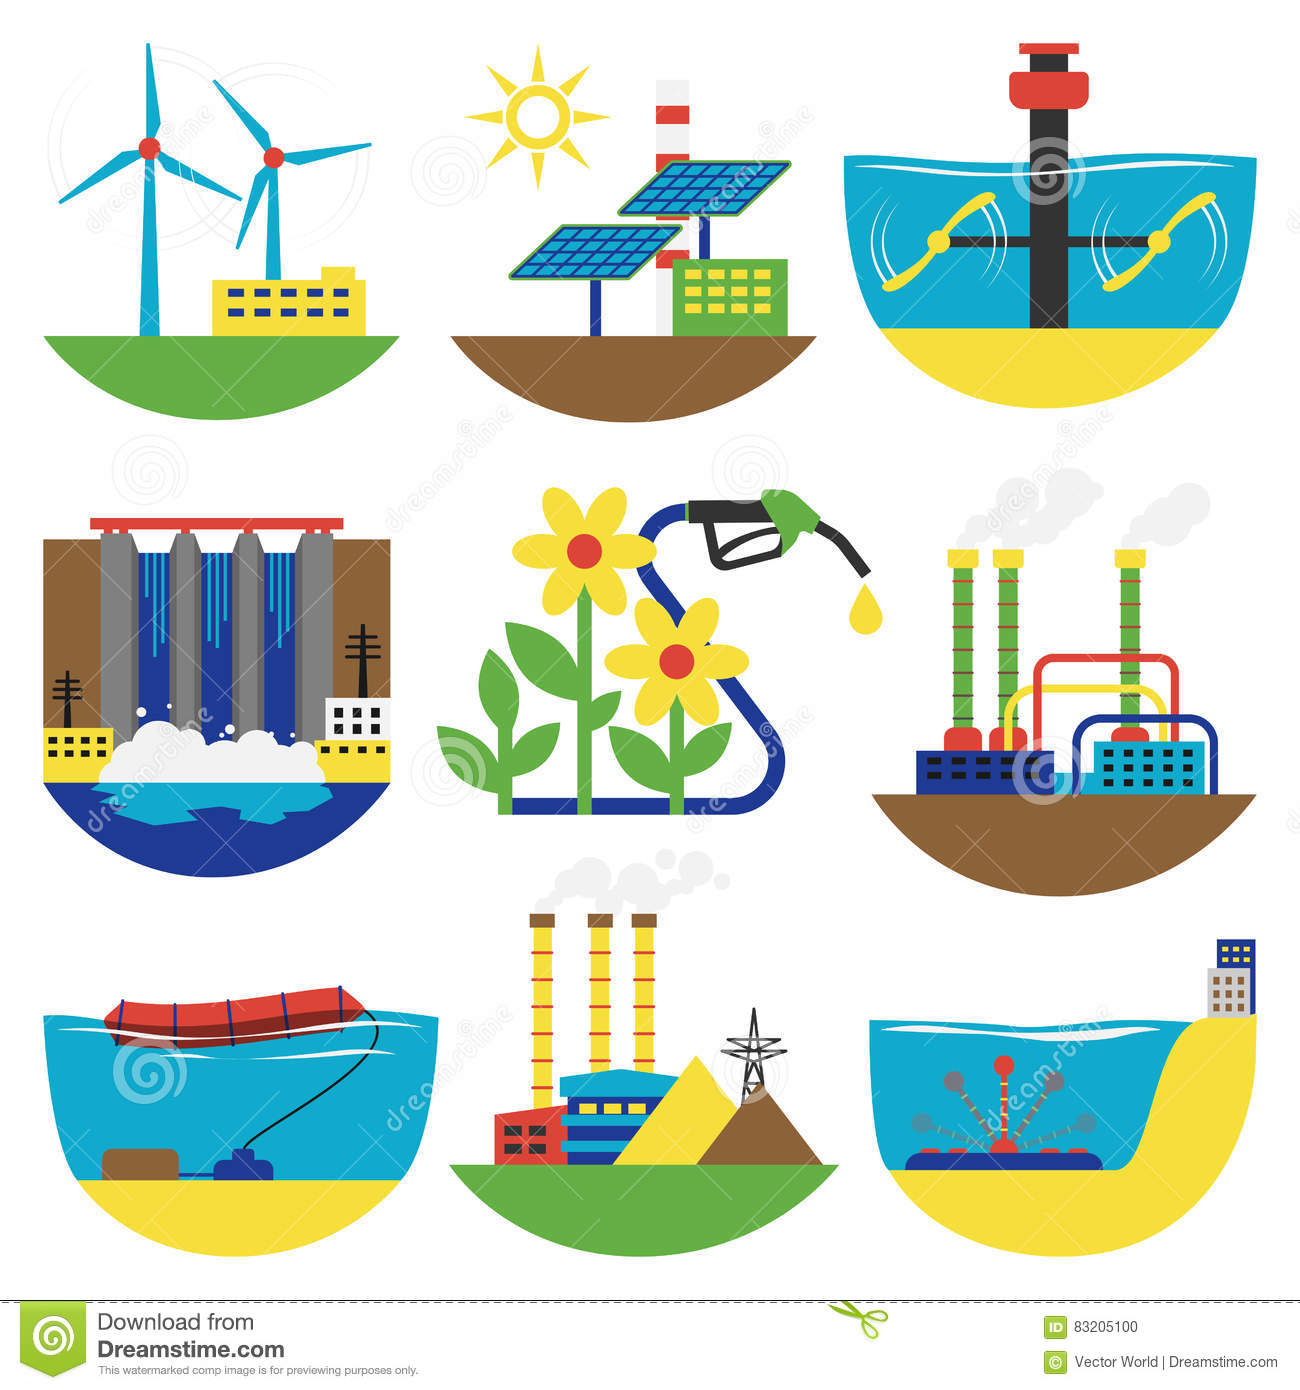 Alternative Energy Sources Vector Illustration Stock